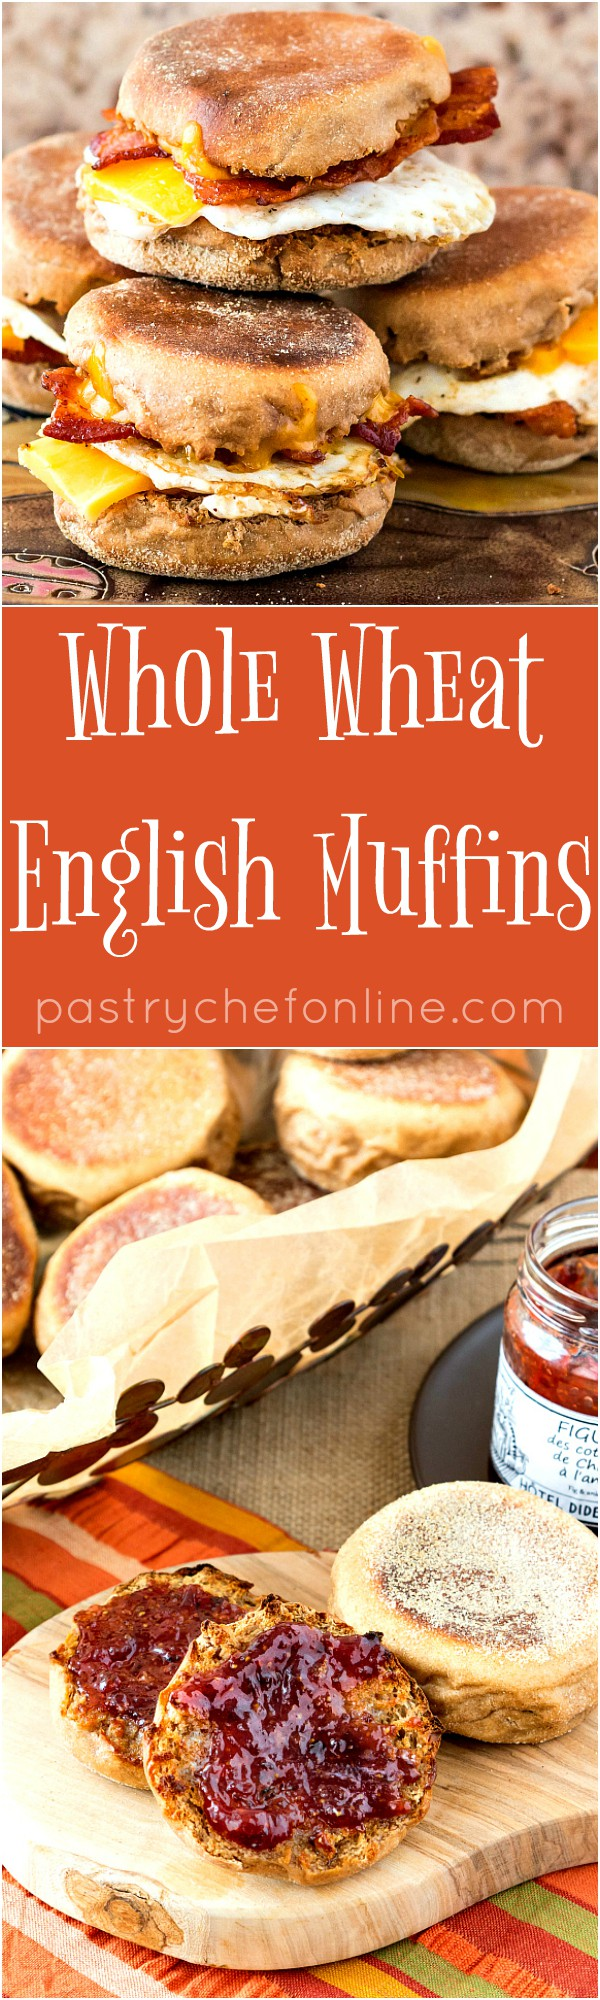 """Long pin showing English muffins. Text reads """"Whole Wheat English Muffins pastrychefonline.com""""."""